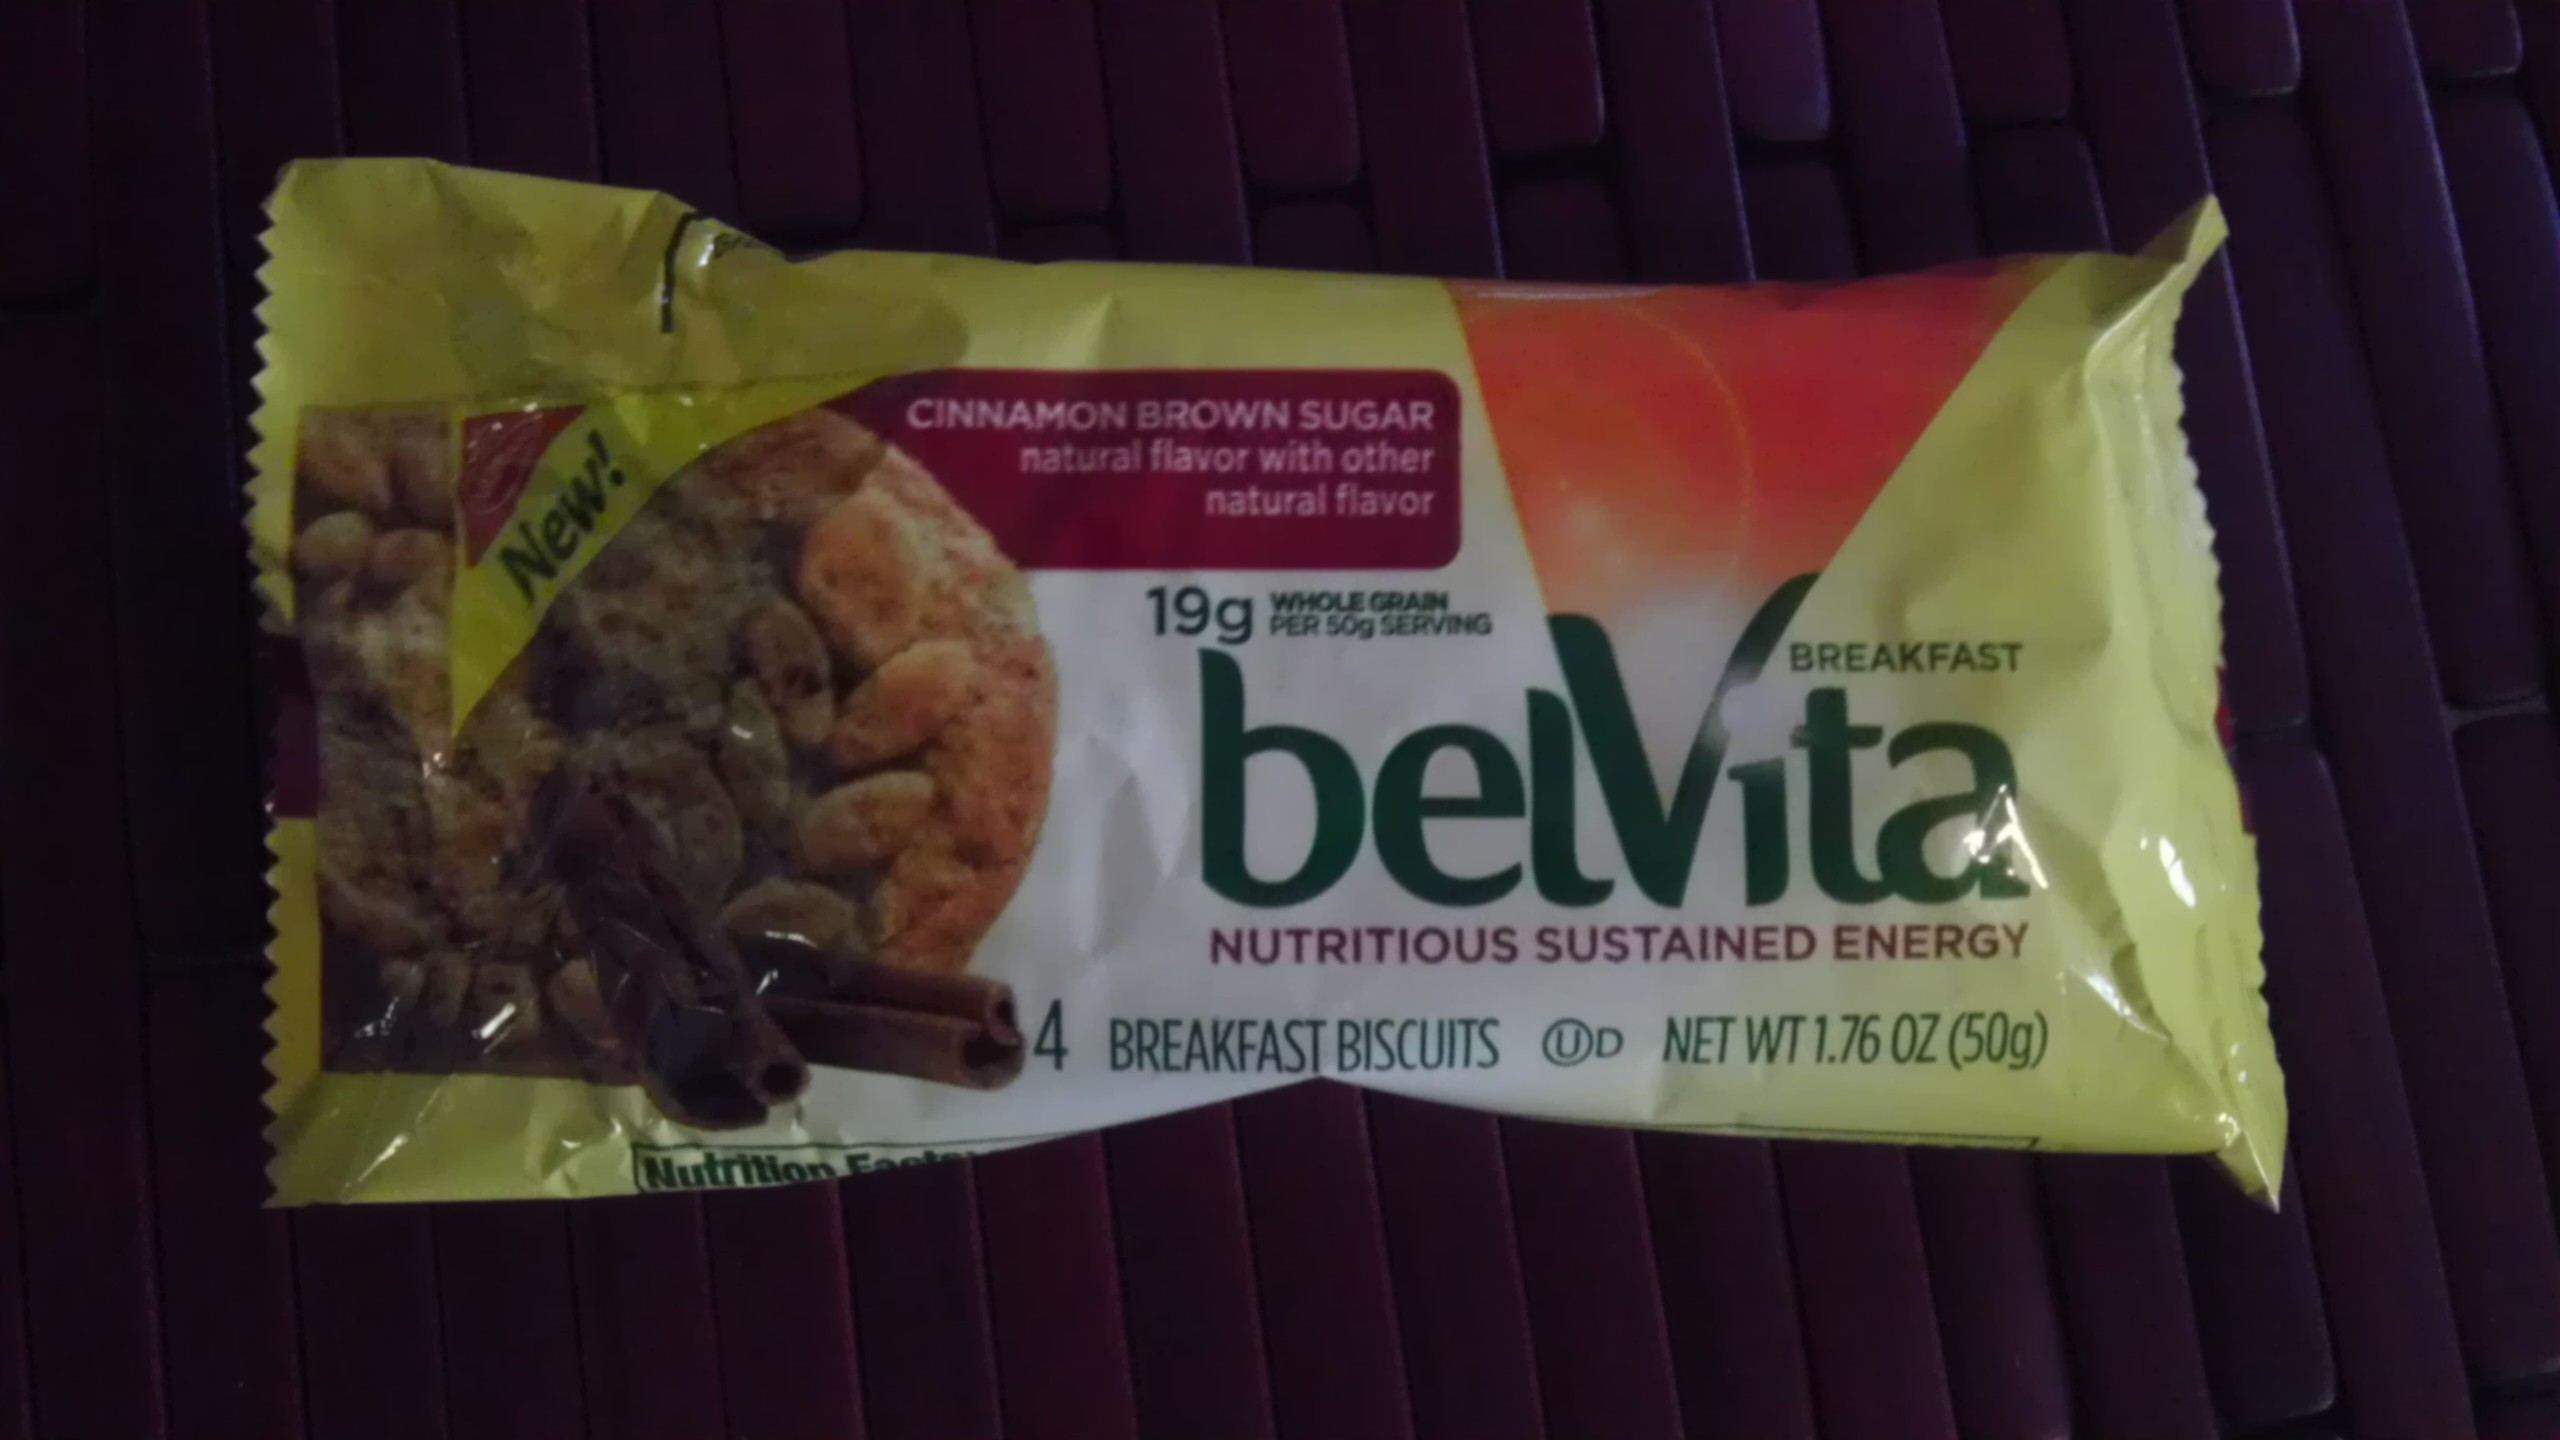 Breakfast Biscuit. Belvita. Influenster. Vox box, Sugar n Spice